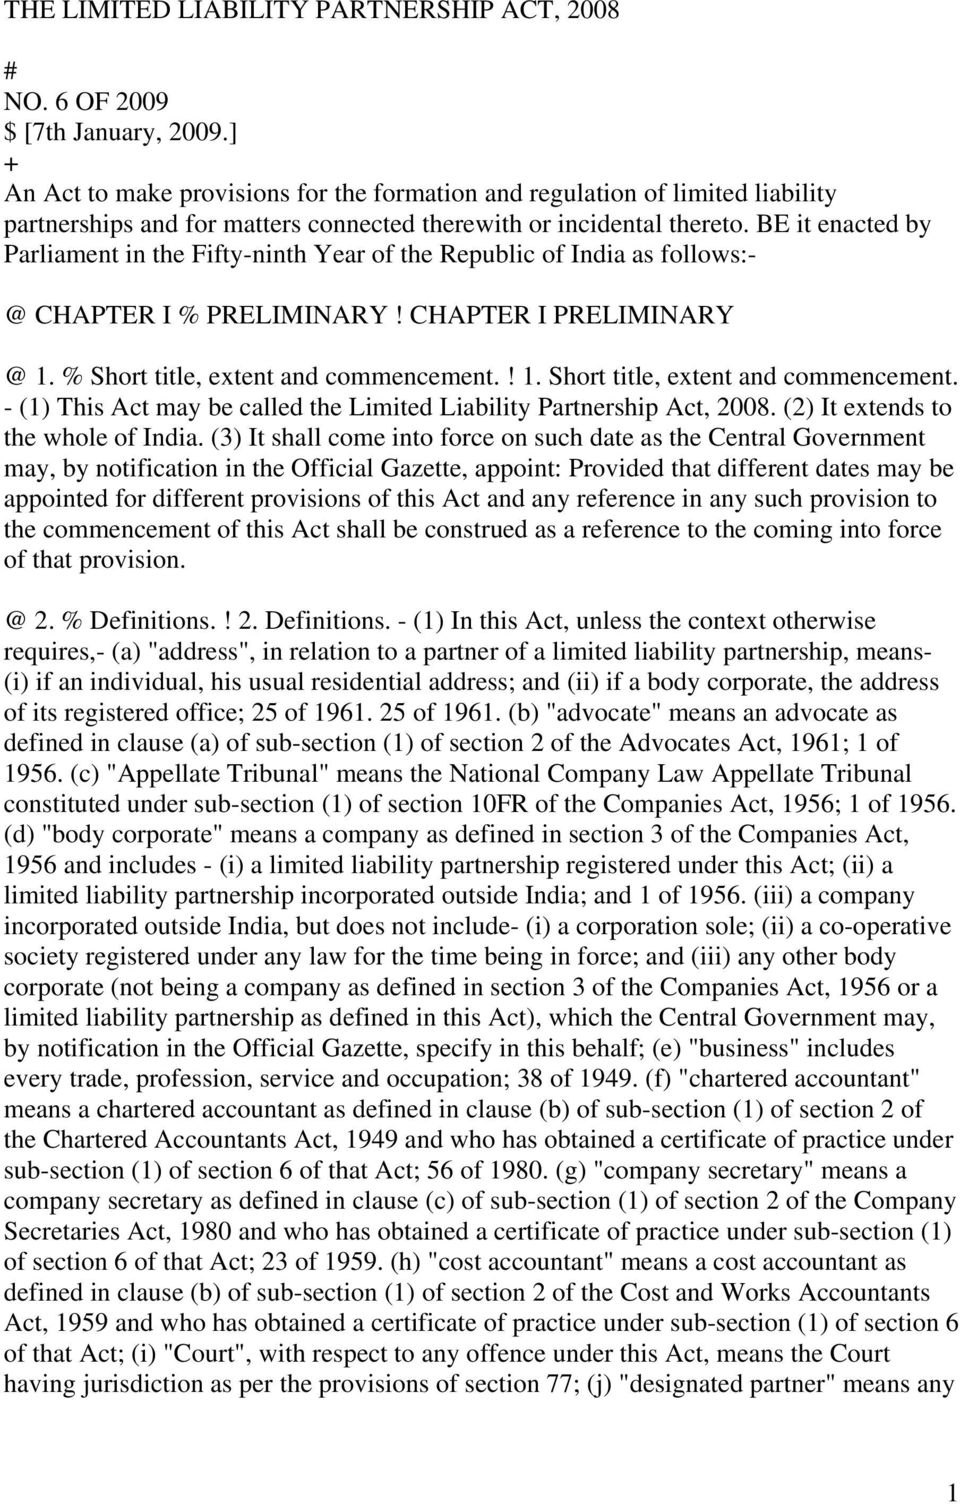 BE it enacted by Parliament in the Fifty-ninth Year of the Republic of India as follows:- @ CHAPTER I % PRELIMINARY! CHAPTER I PRELIMINARY @ 1. % Short title, extent and commencement.